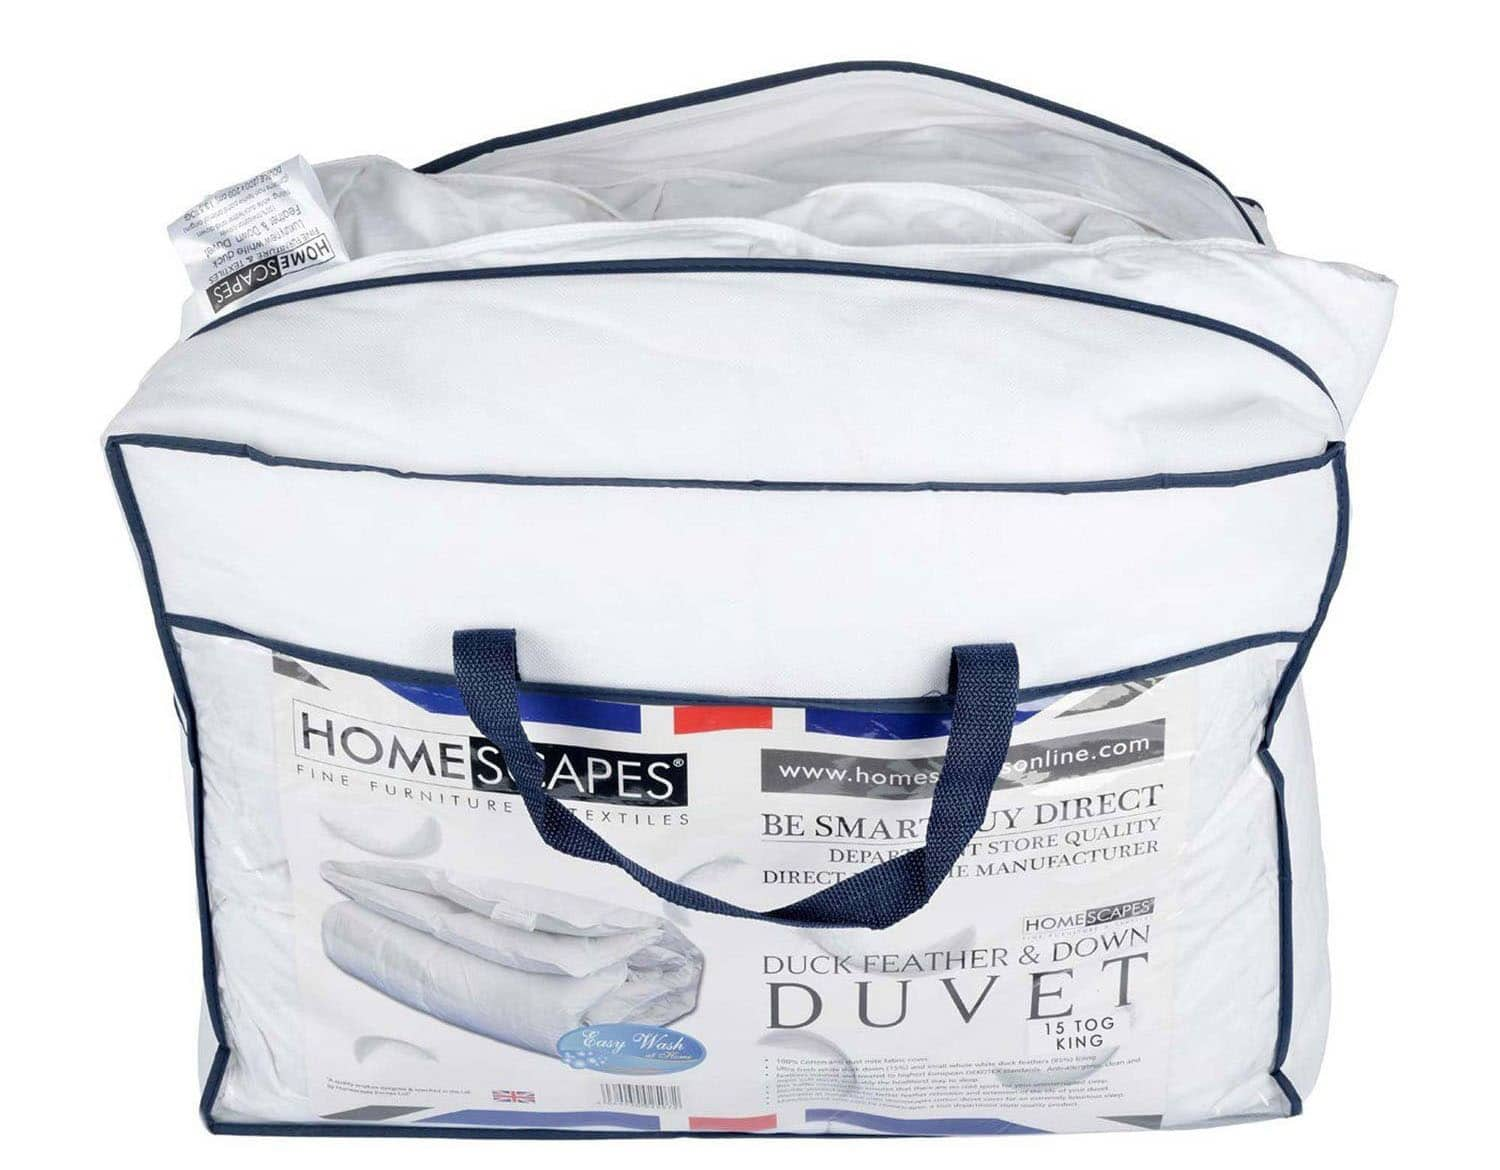 Homescapes Deluxe Washable Wool Duvet - All Season